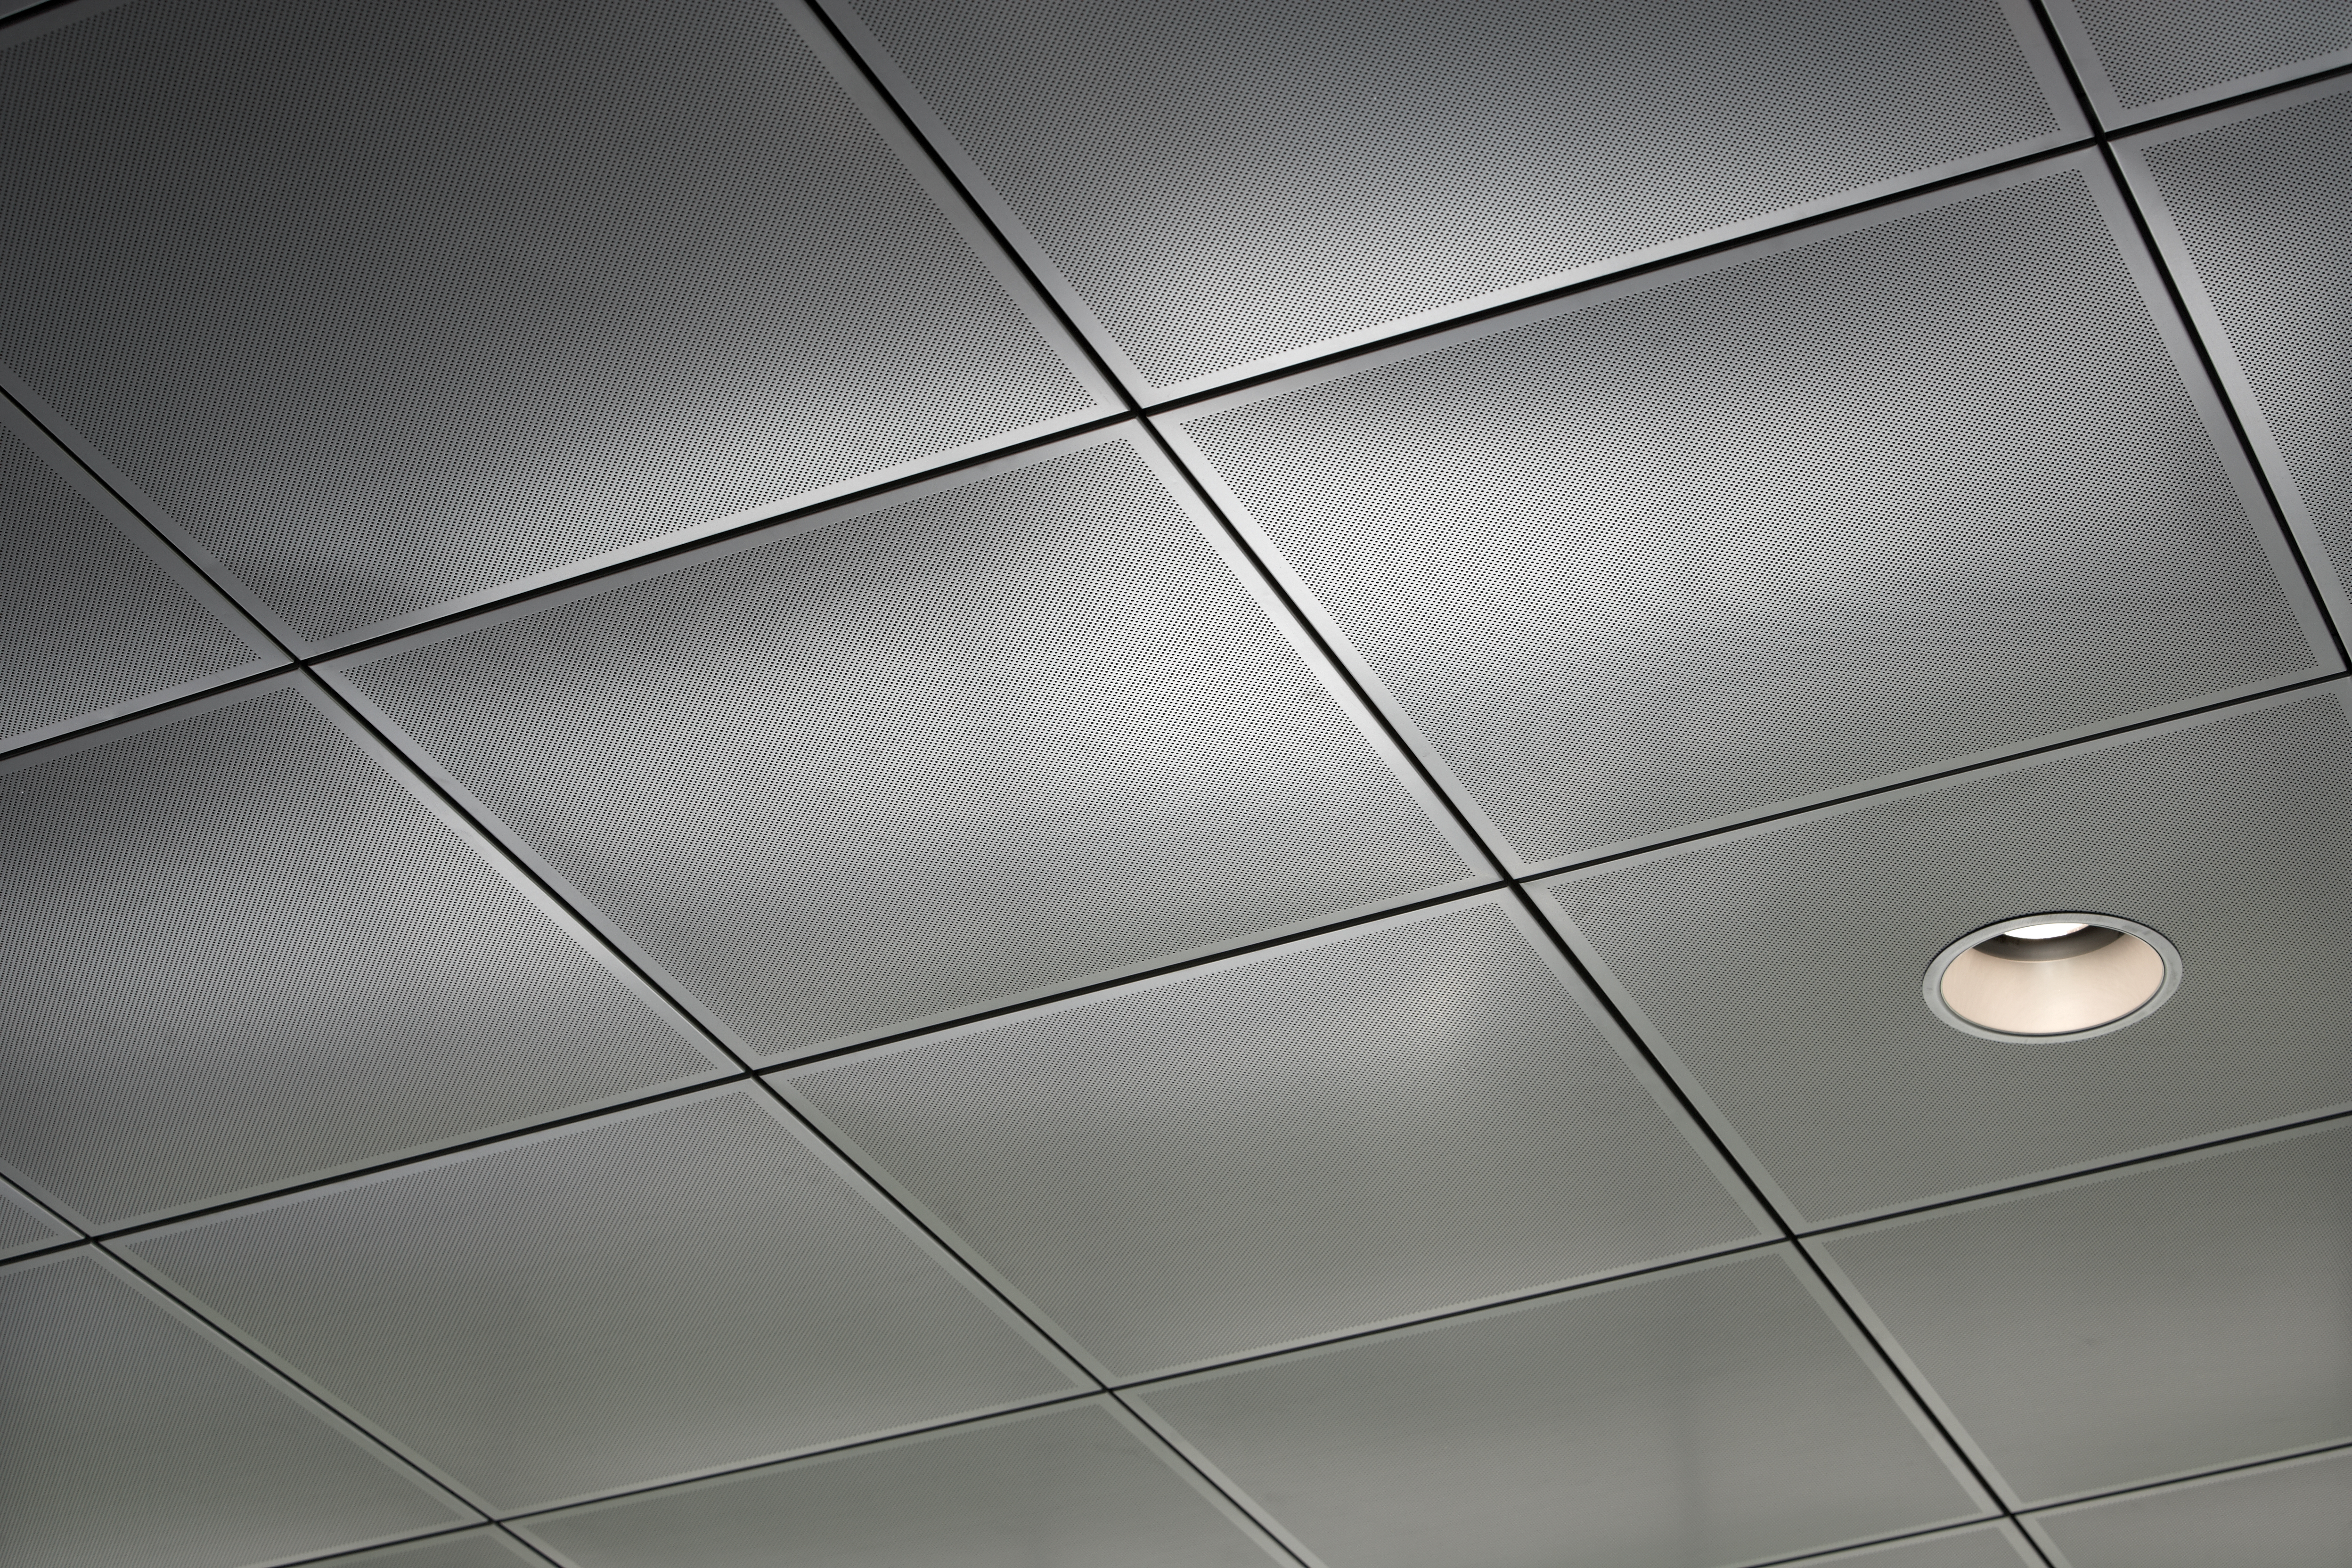 Heather west public relations rockfon spanair clip in ceiling panels story resources dailygadgetfo Gallery